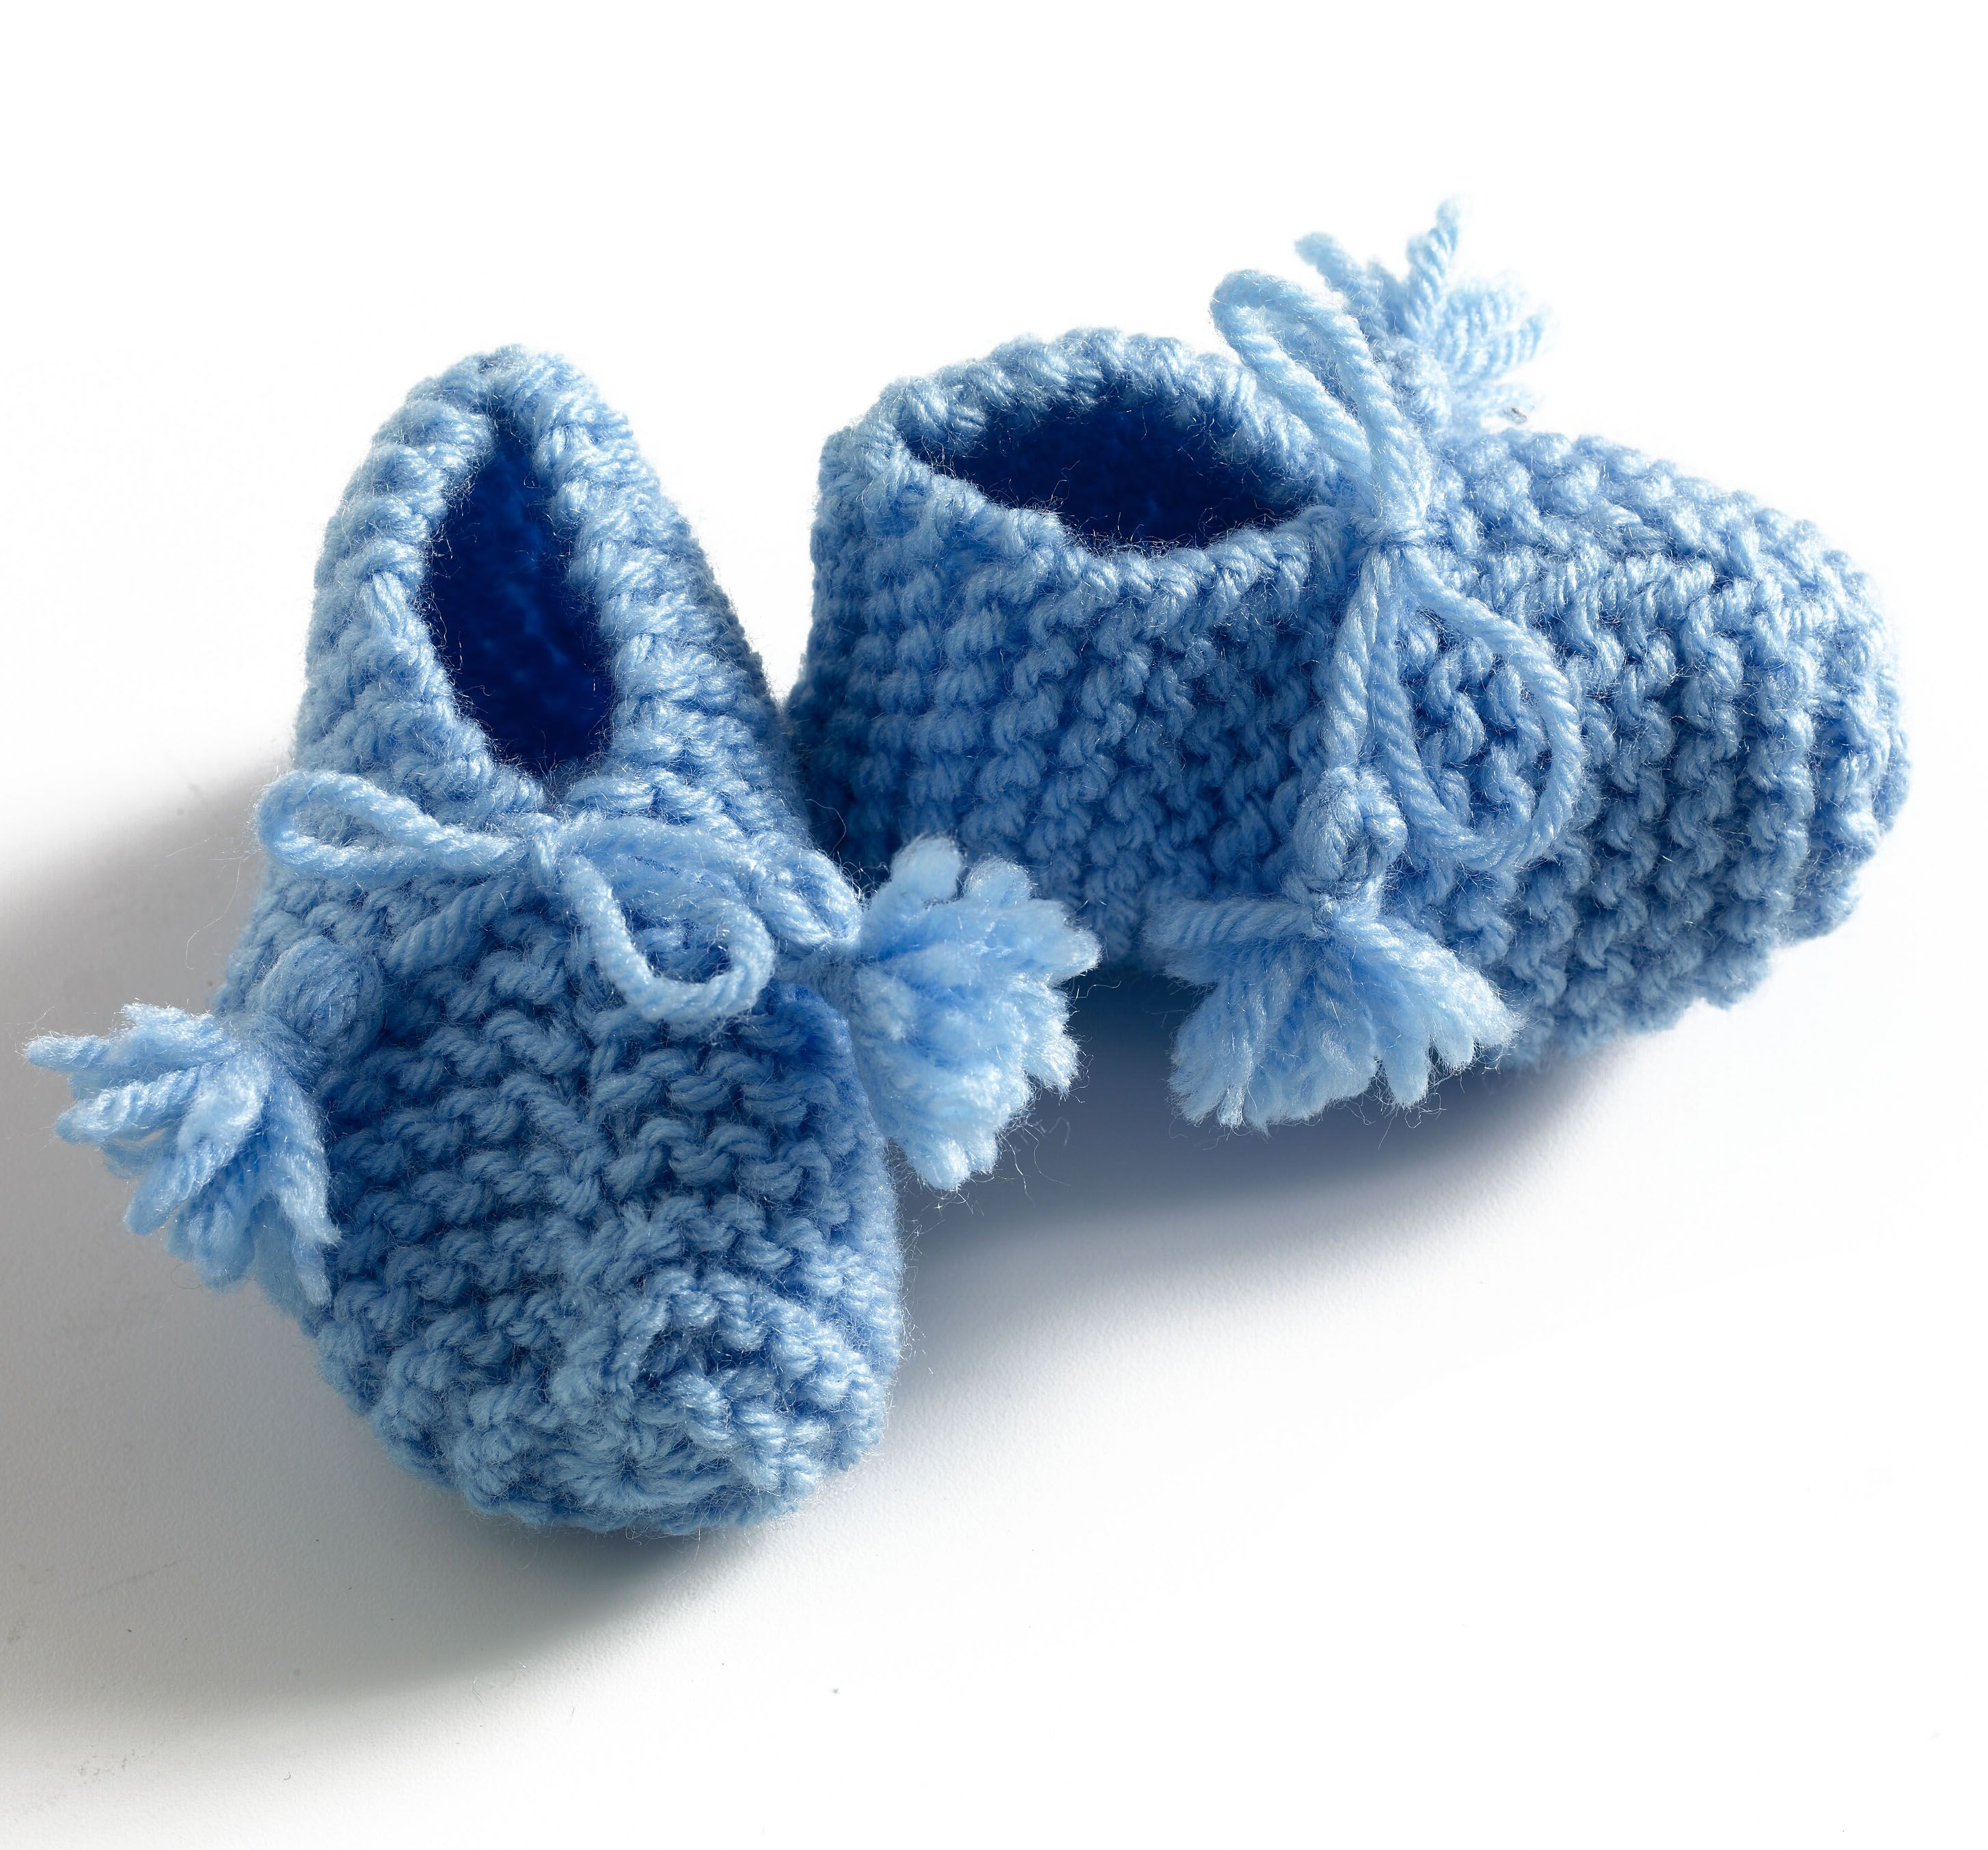 Free knitting patterns two needle baby booties for beginners free knitting patterns two needle baby booties for beginners bankloansurffo Choice Image